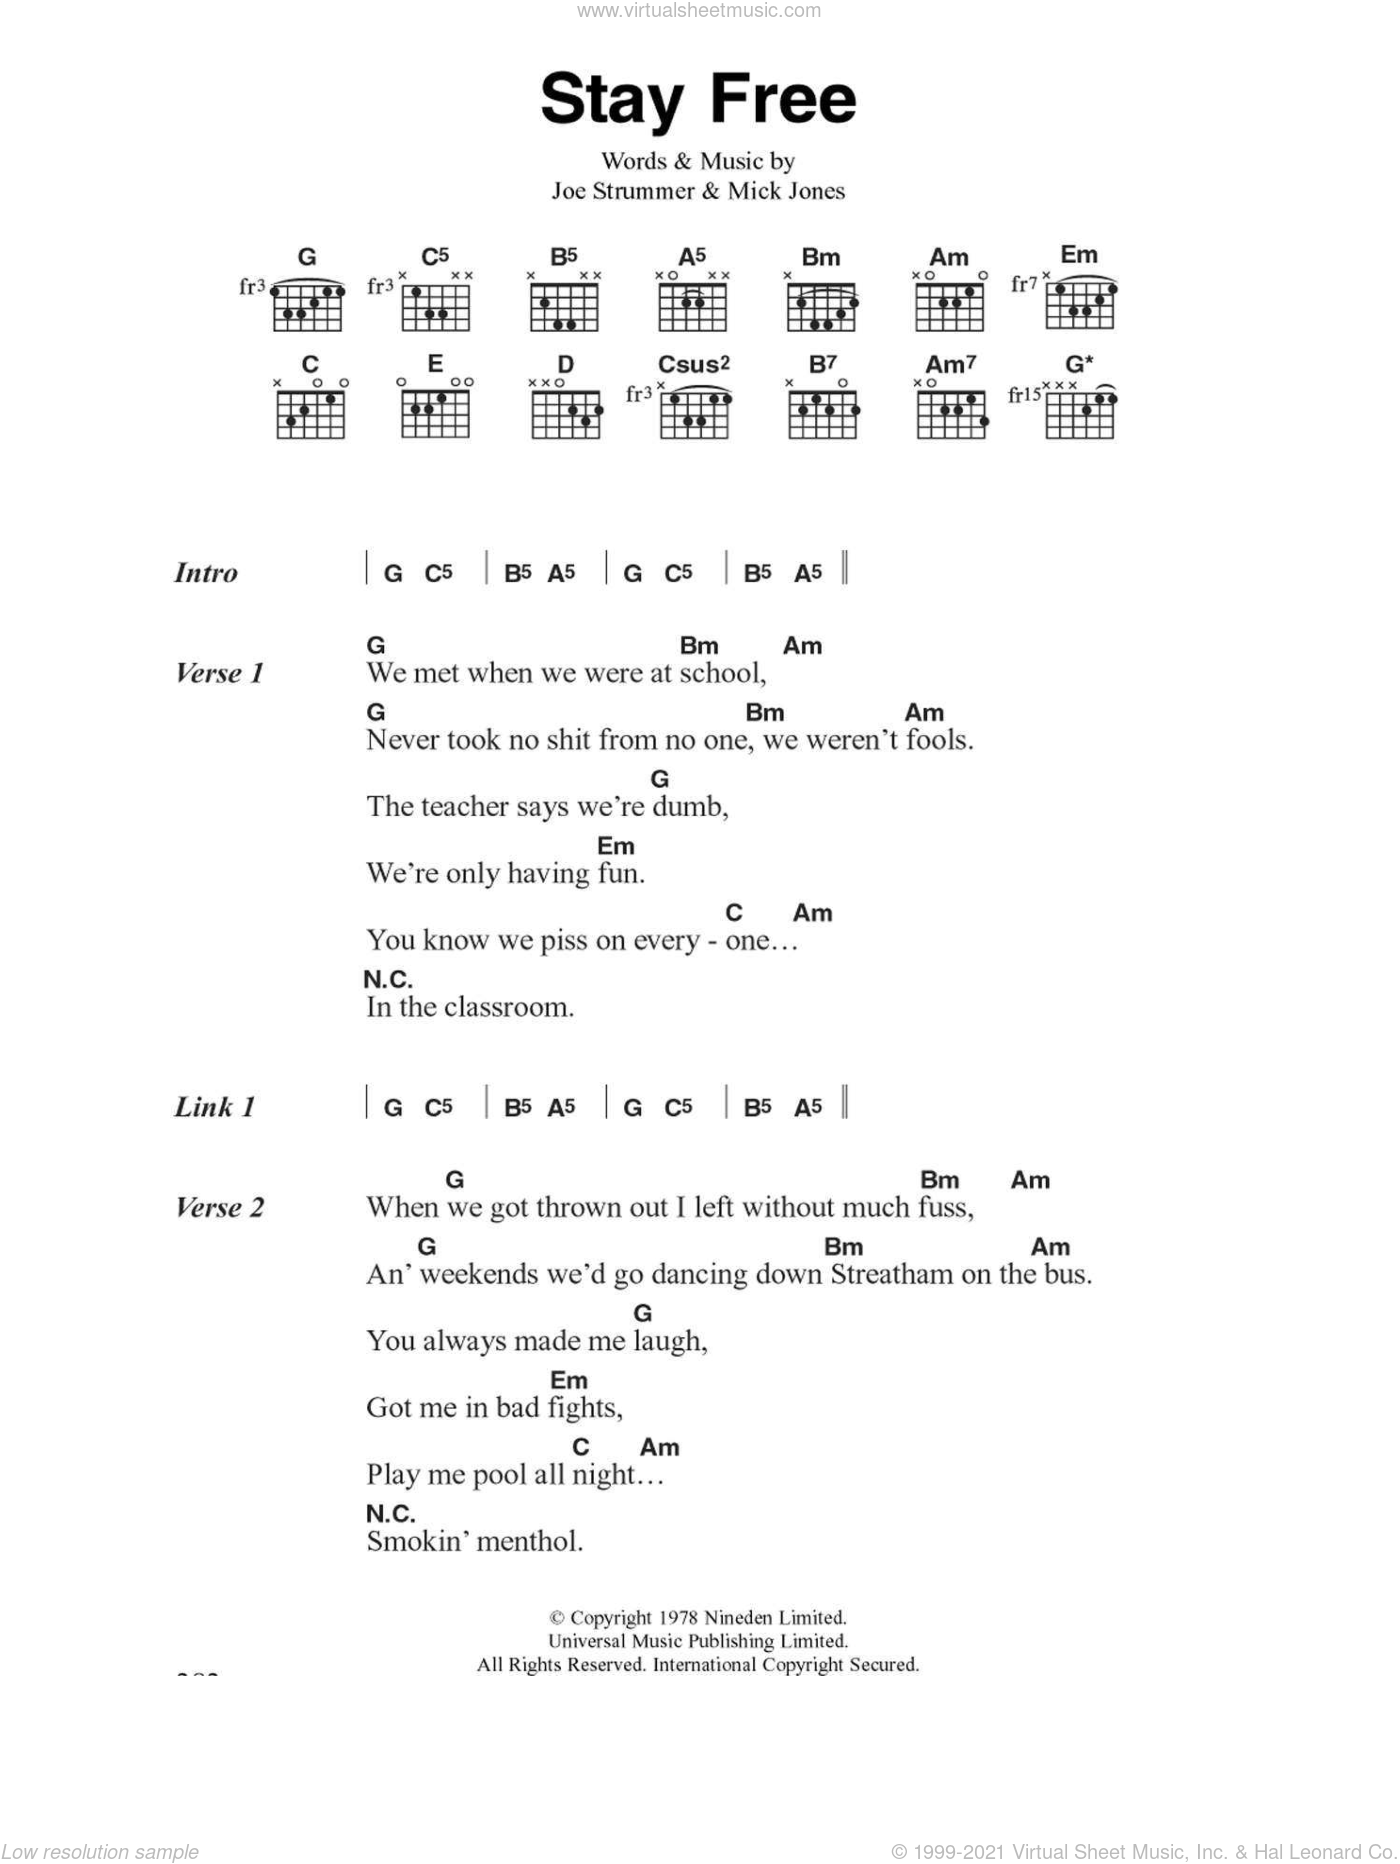 Stay Free sheet music for guitar (chords) by Joe Strummer, The Clash and Mick Jones. Score Image Preview.